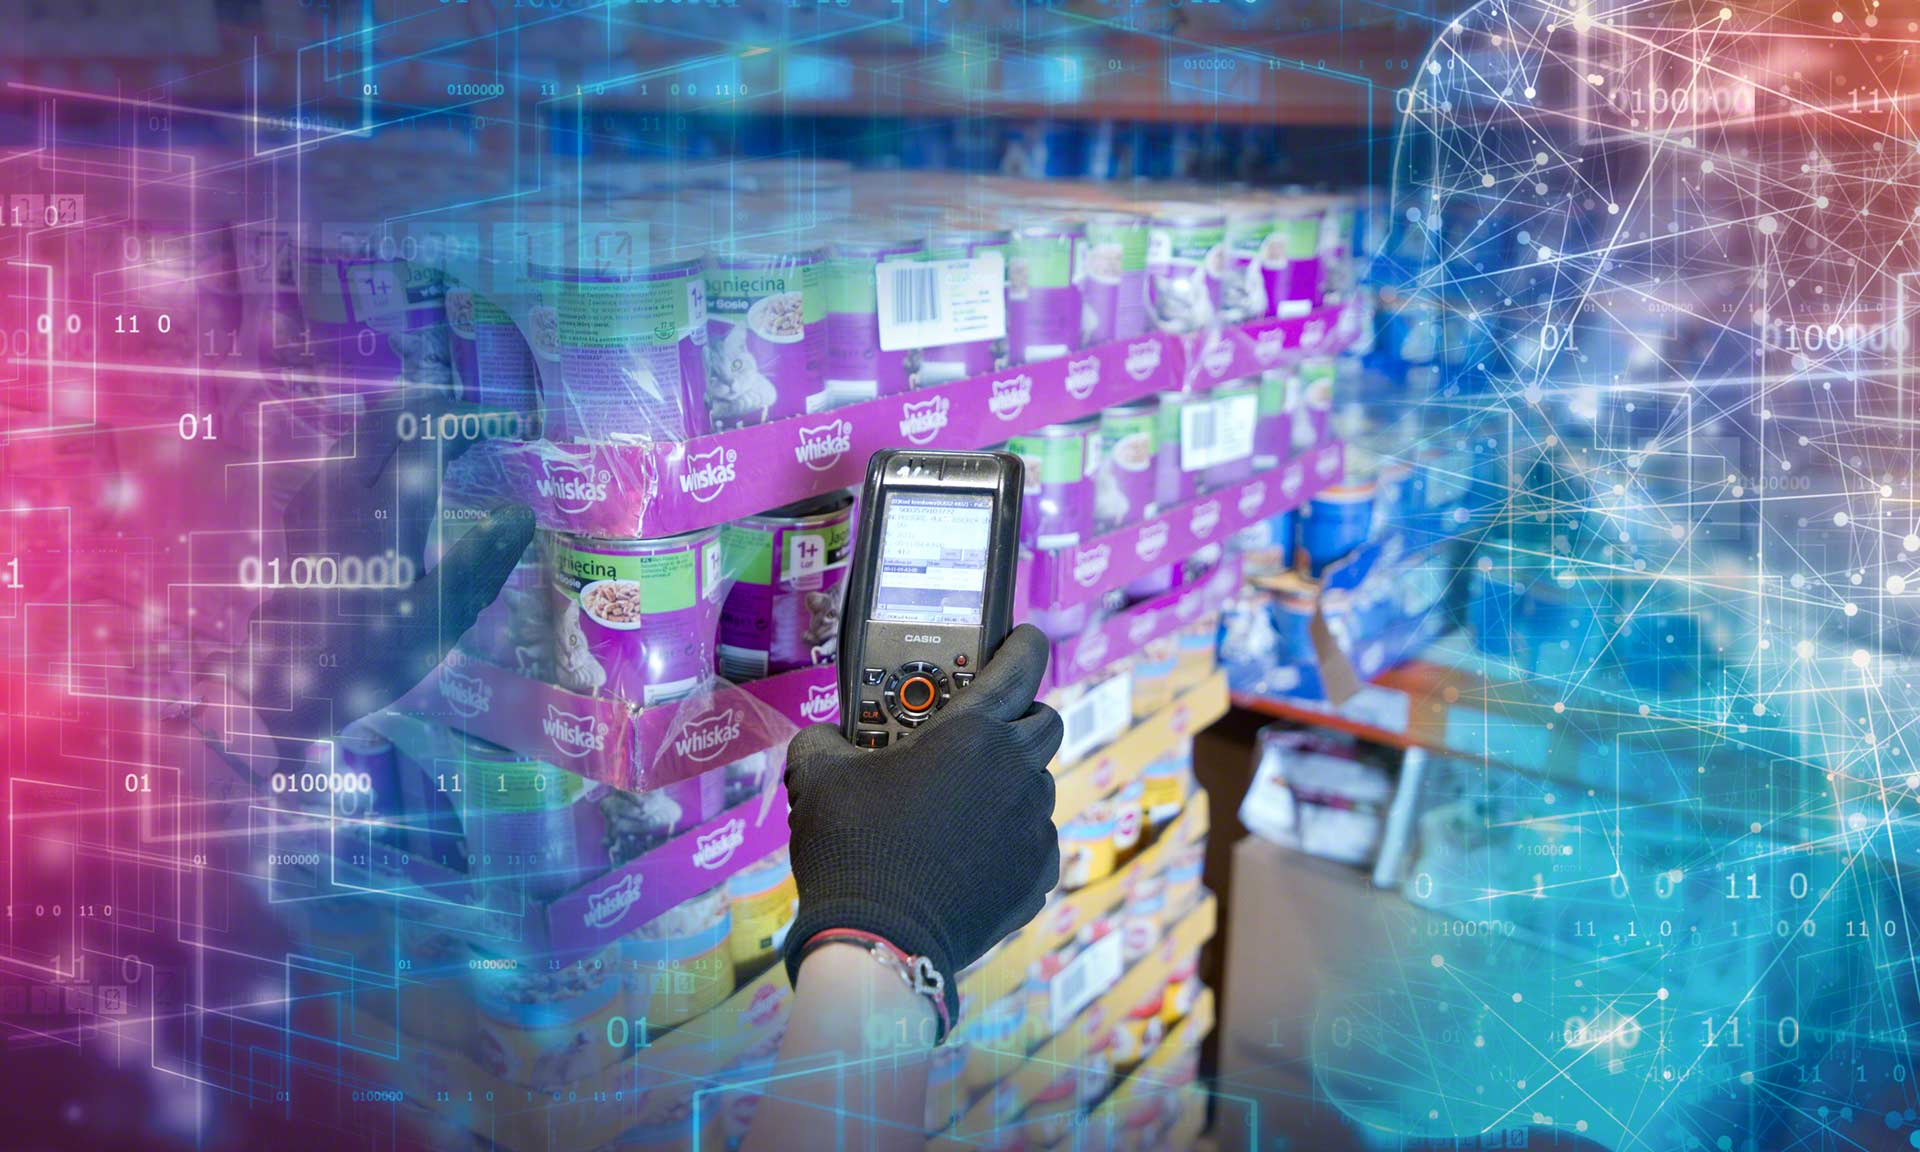 An SSCC code is a global standard used to identify each unit load that enters or leaves the warehouse